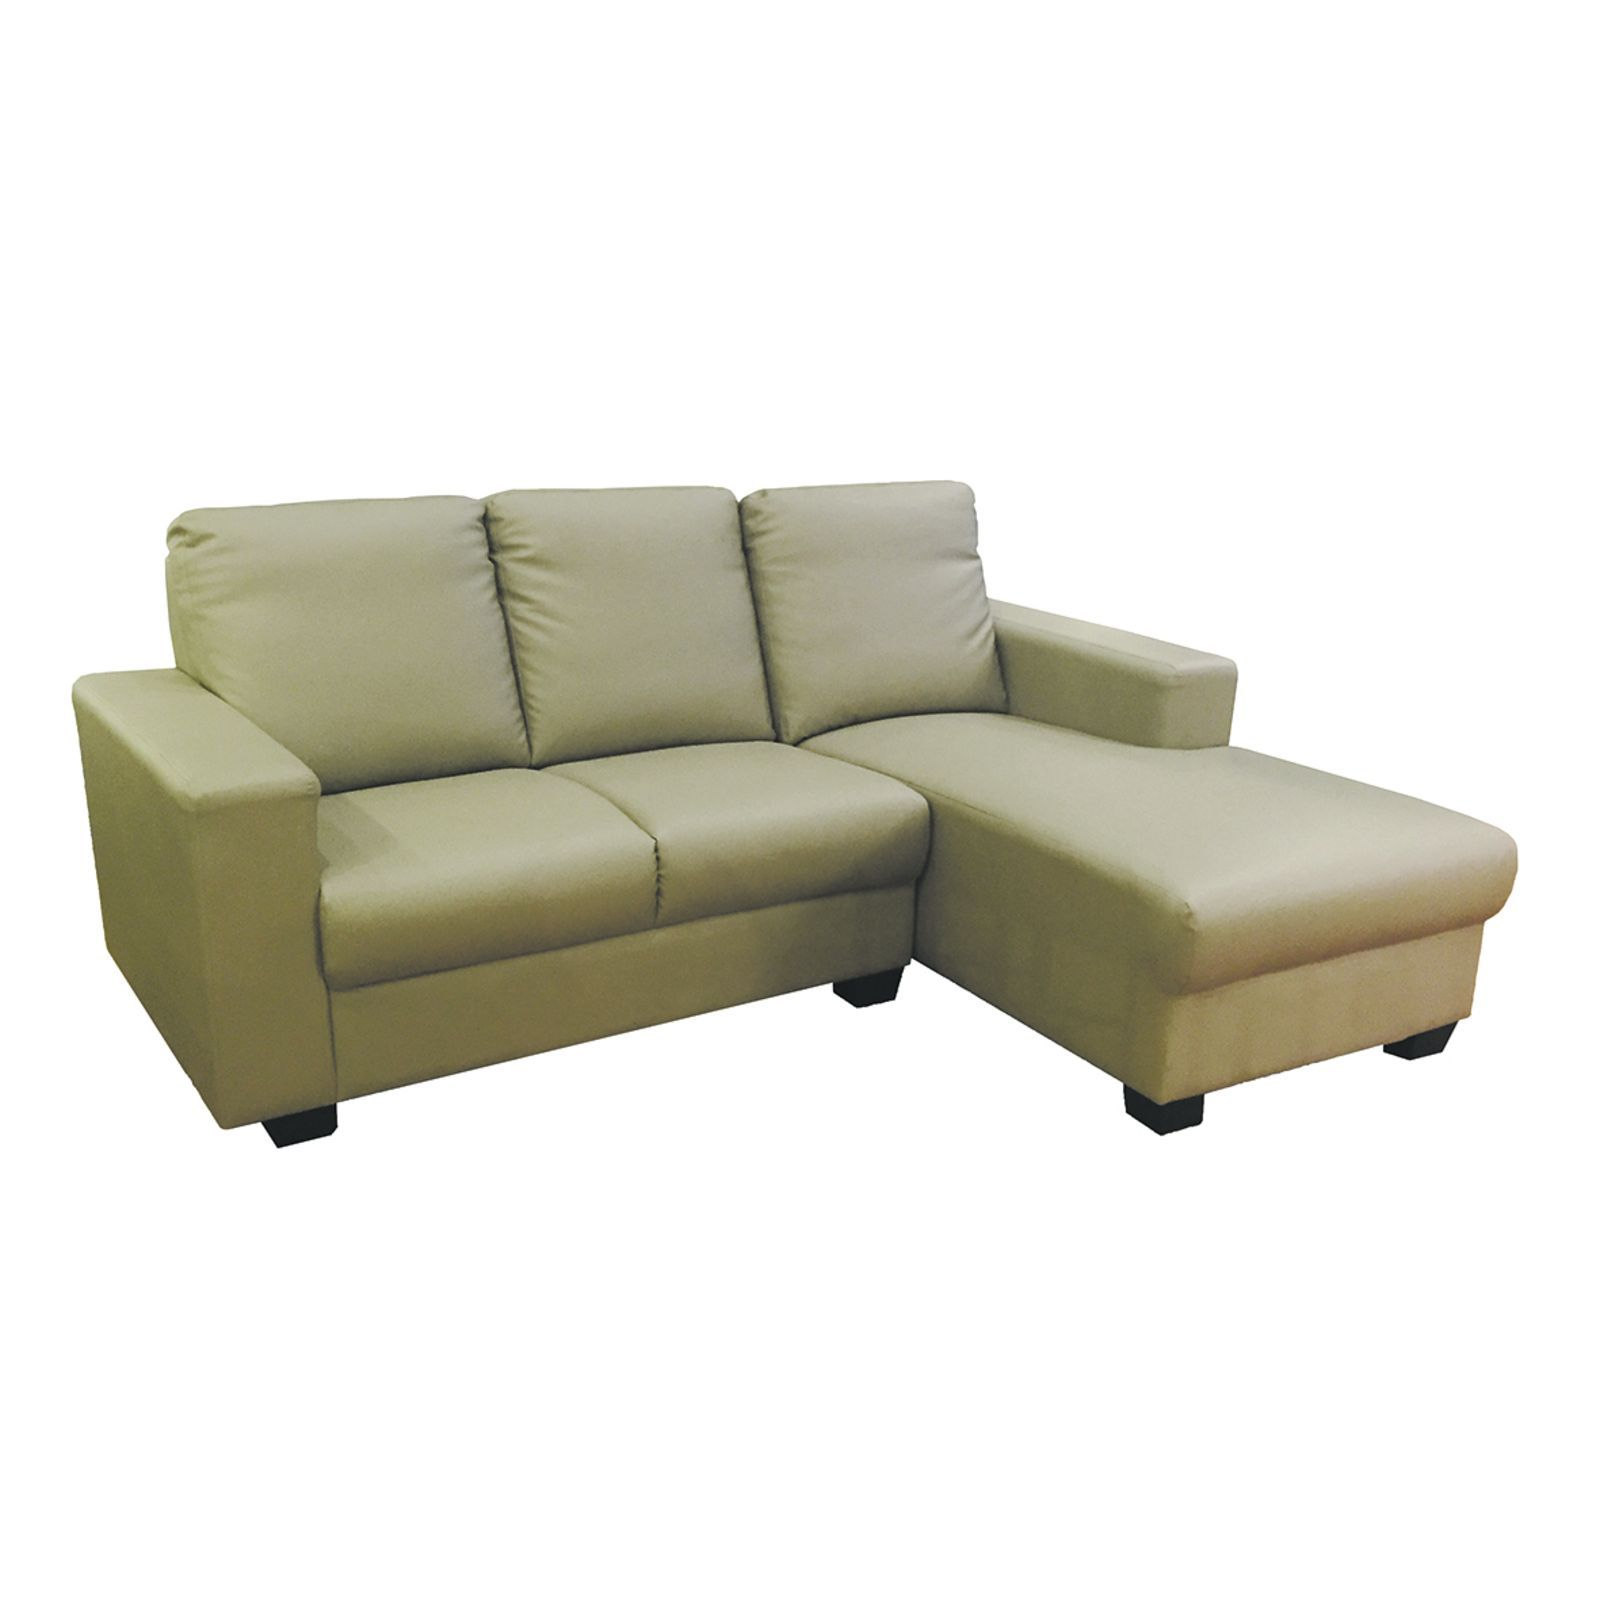 54 Reference Of L Shape Recliner Sofa Singapore In 2020 Reclining Sofa Recliner Quality Sofas